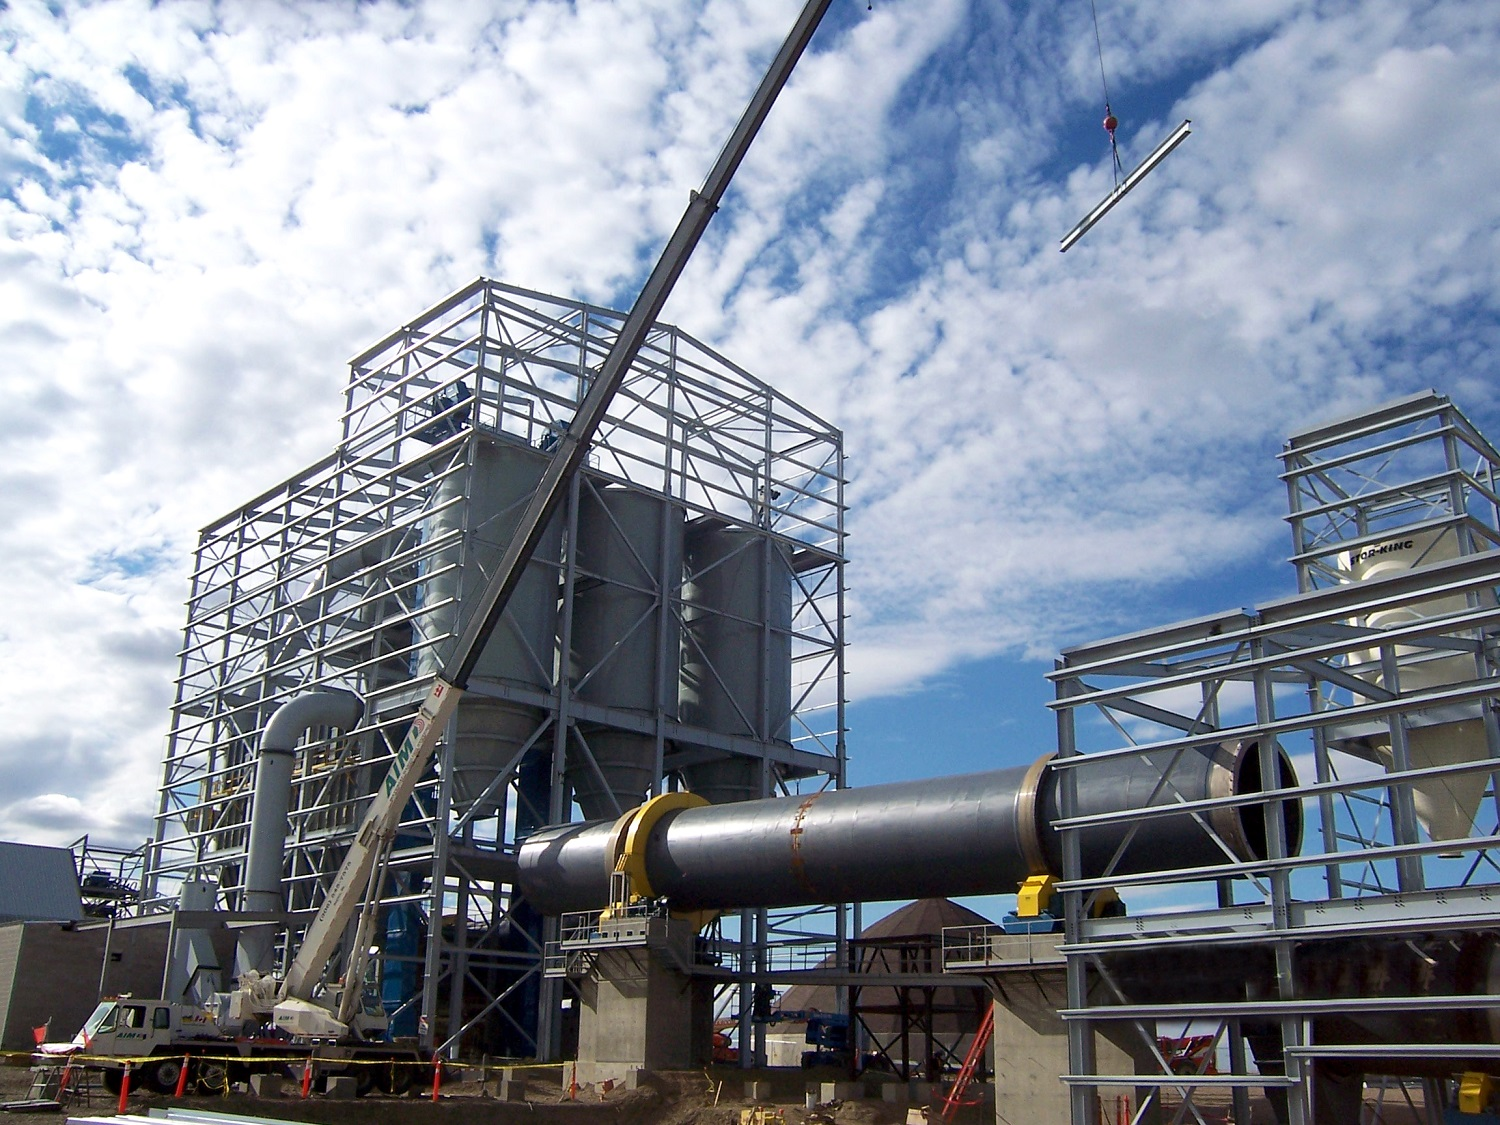 Metakaolin processing facility Design and installation of all foundations, concrete, structural steel and processing buildings whitemud crane building structure Ag-industrial Bulk material handling Mining Wood Mountain Crusher Ore handling Rotary dryer Kiln Cooler Baghouse Coal mill Ore